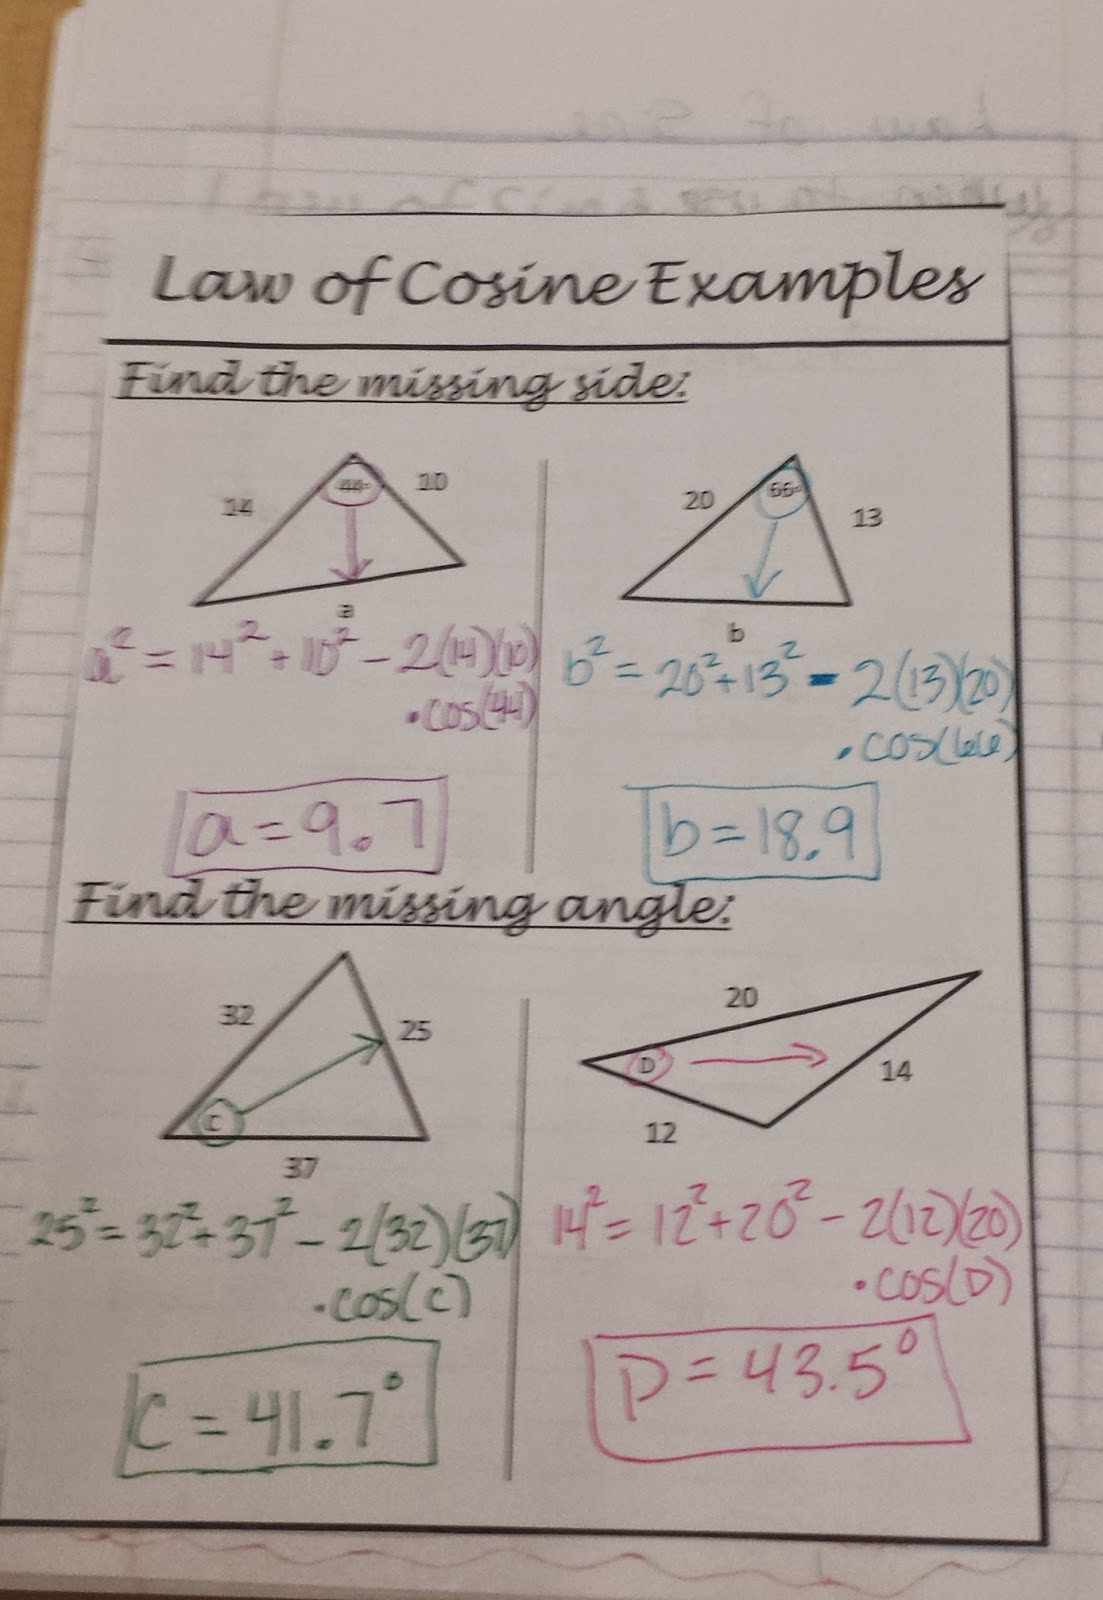 Law Of Cosines Worksheet Ms Rodriguez S Precal Class 10 30 2014 Law Of Cosines